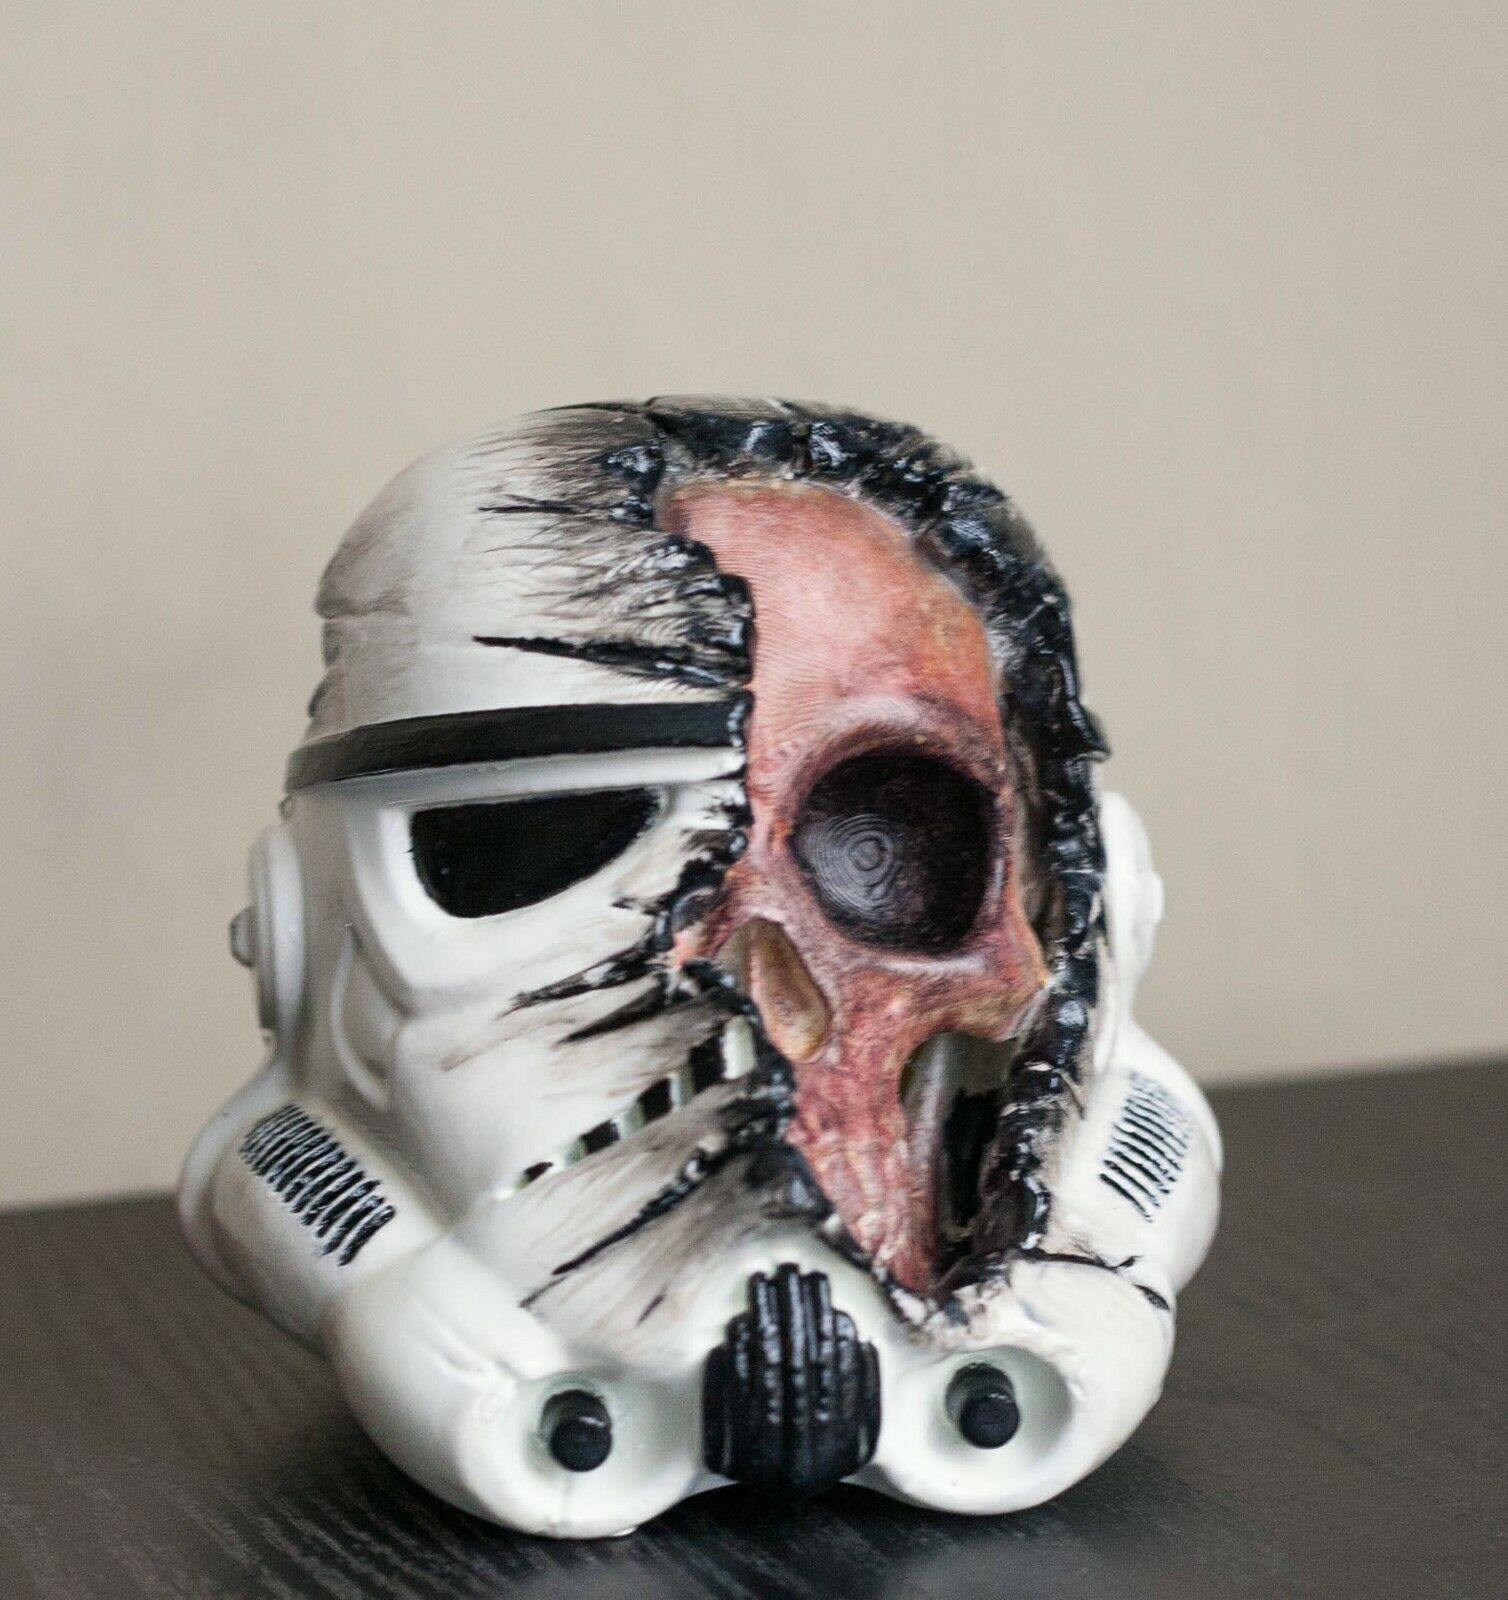 estrella guerras DECOR Stormtrooper HELMET Stranger Things Storm Trooper 3d printed